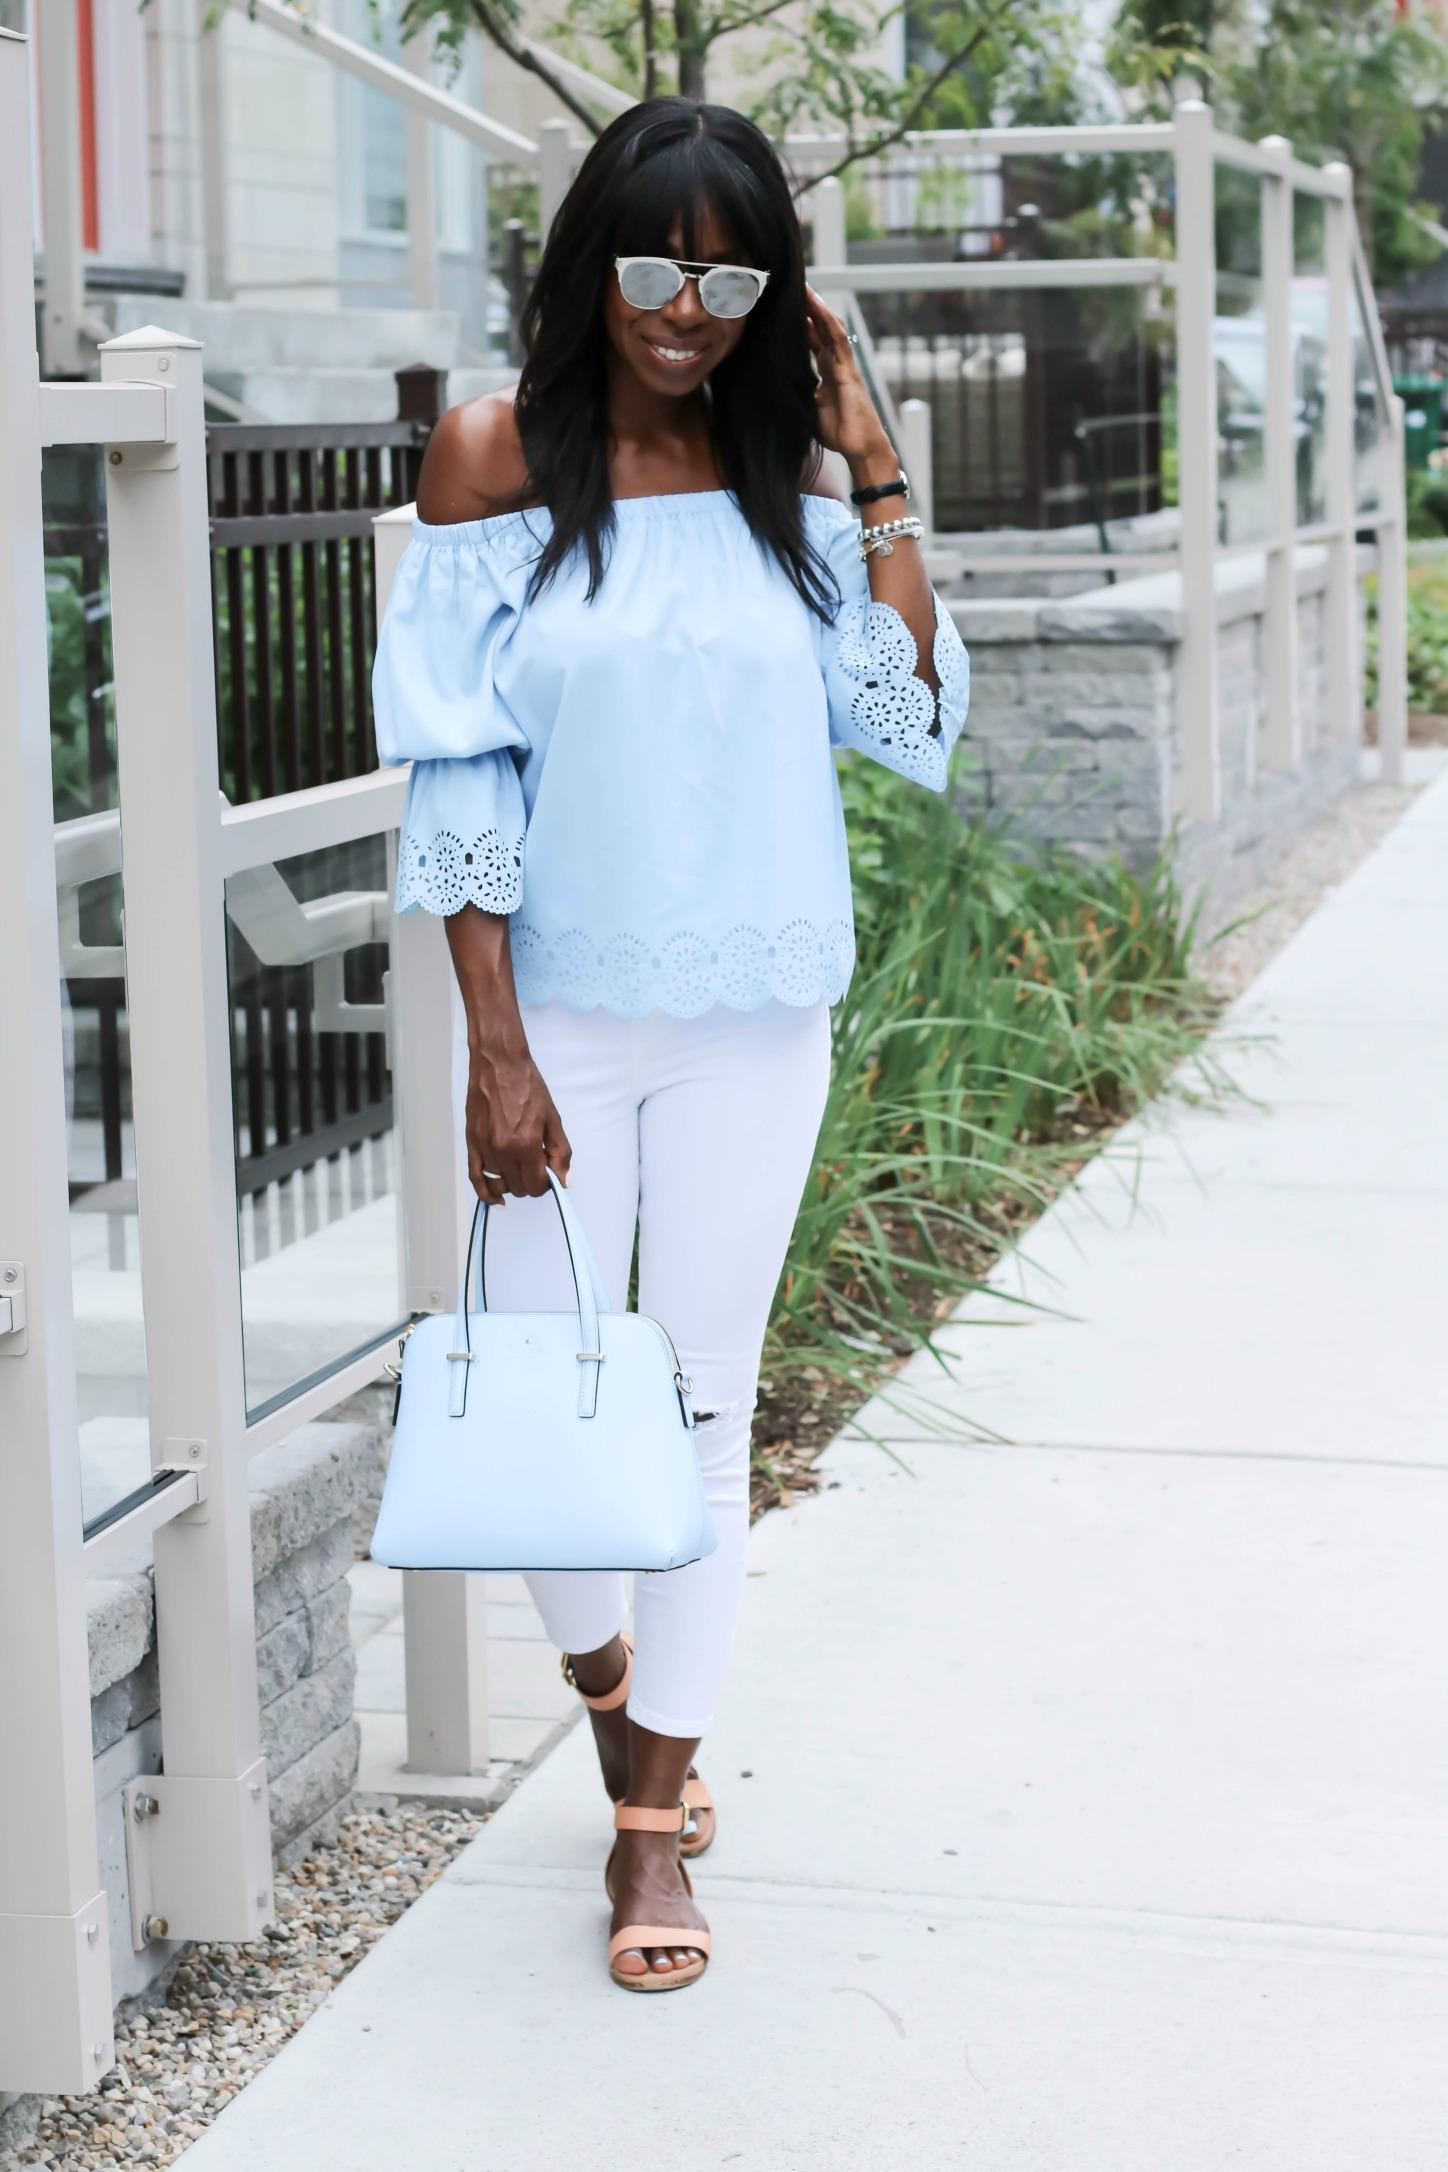 The Unlikely Blue Belle | www.styledomination.com